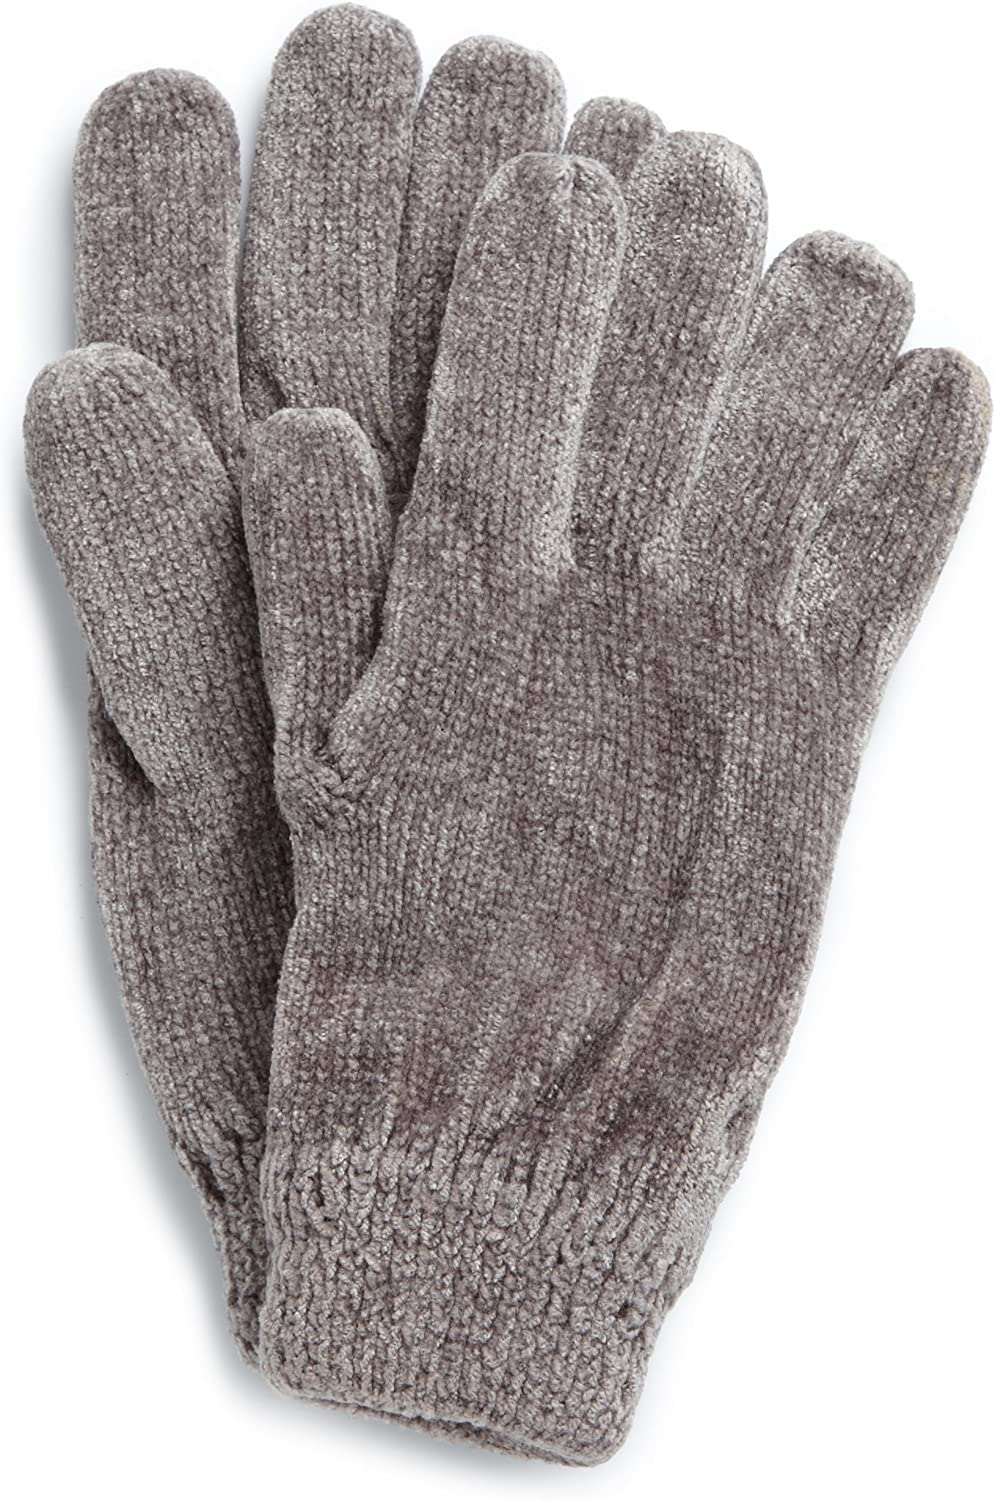 Isotoner Women's Solid Rayon Chenille Glove with Suede Palm Patch